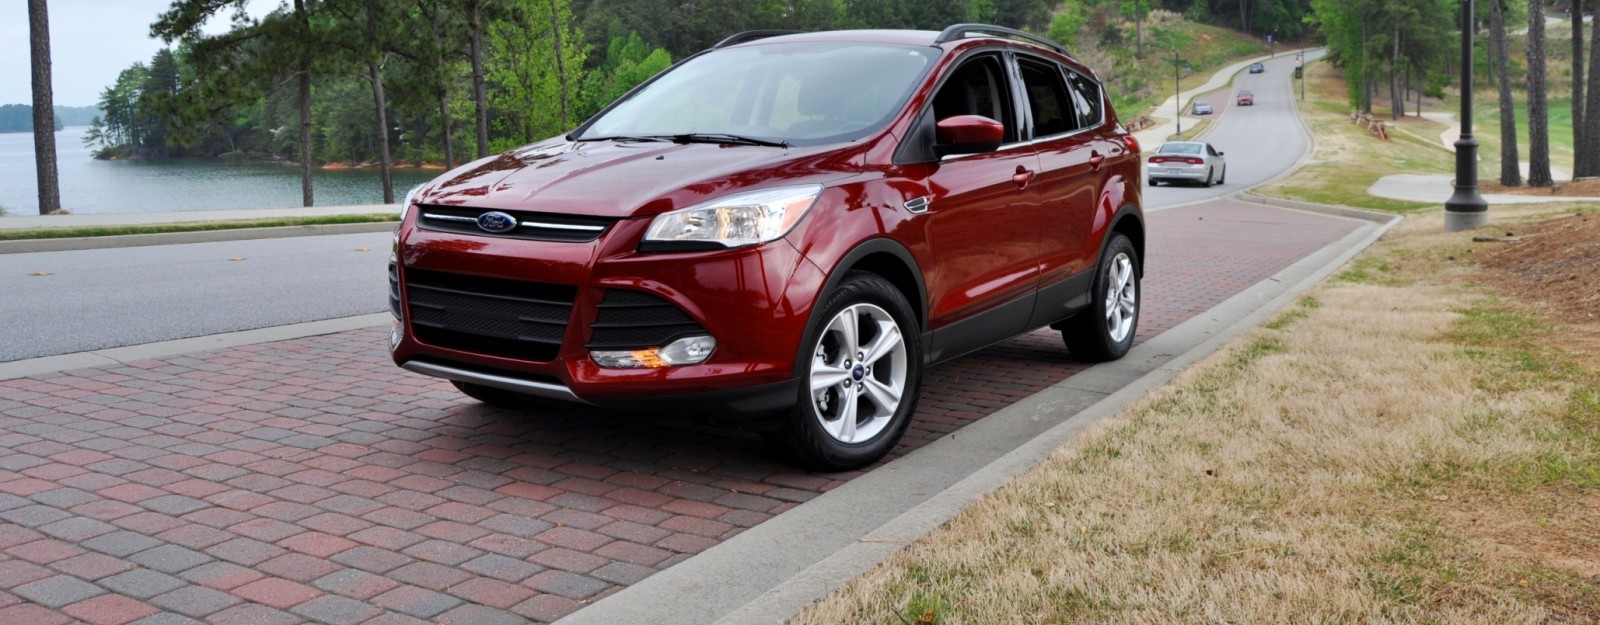 Home road test review 2014 ford escape se 1 6 ecoboost scores a c overall slow pricey and uncomfortable car revs daily com road tests 2014 ford